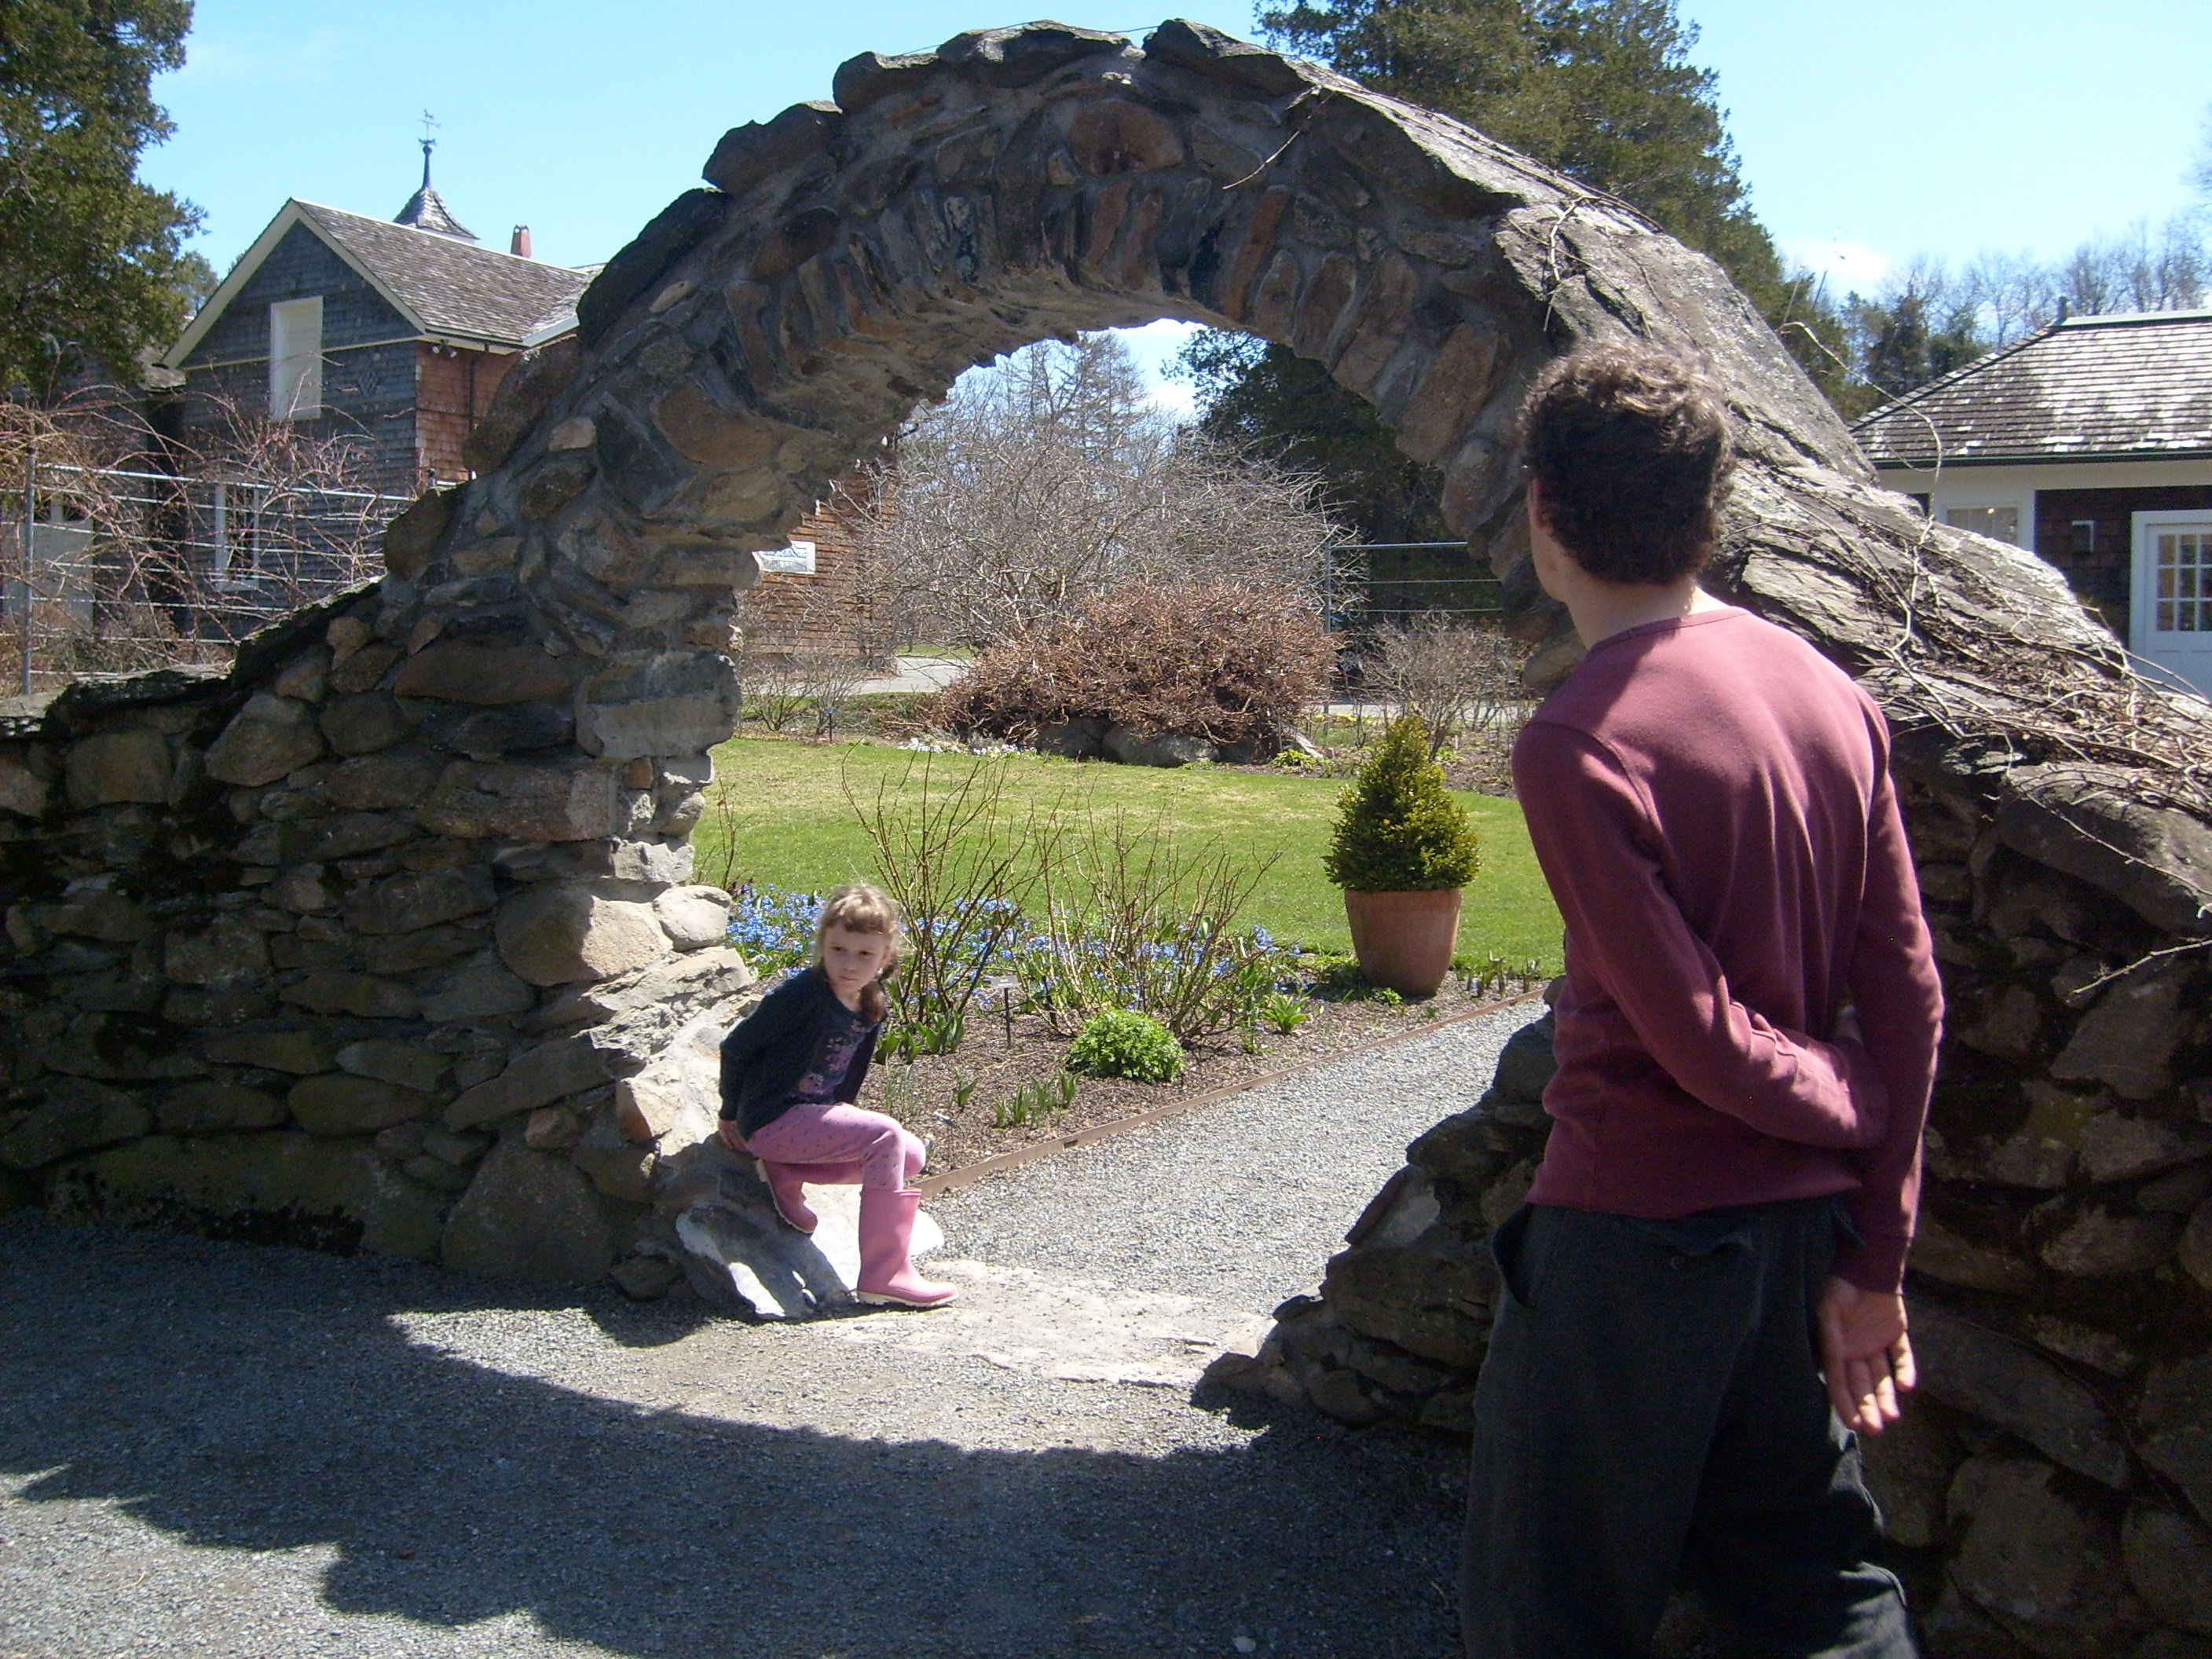 K and Ben in the Moon gate